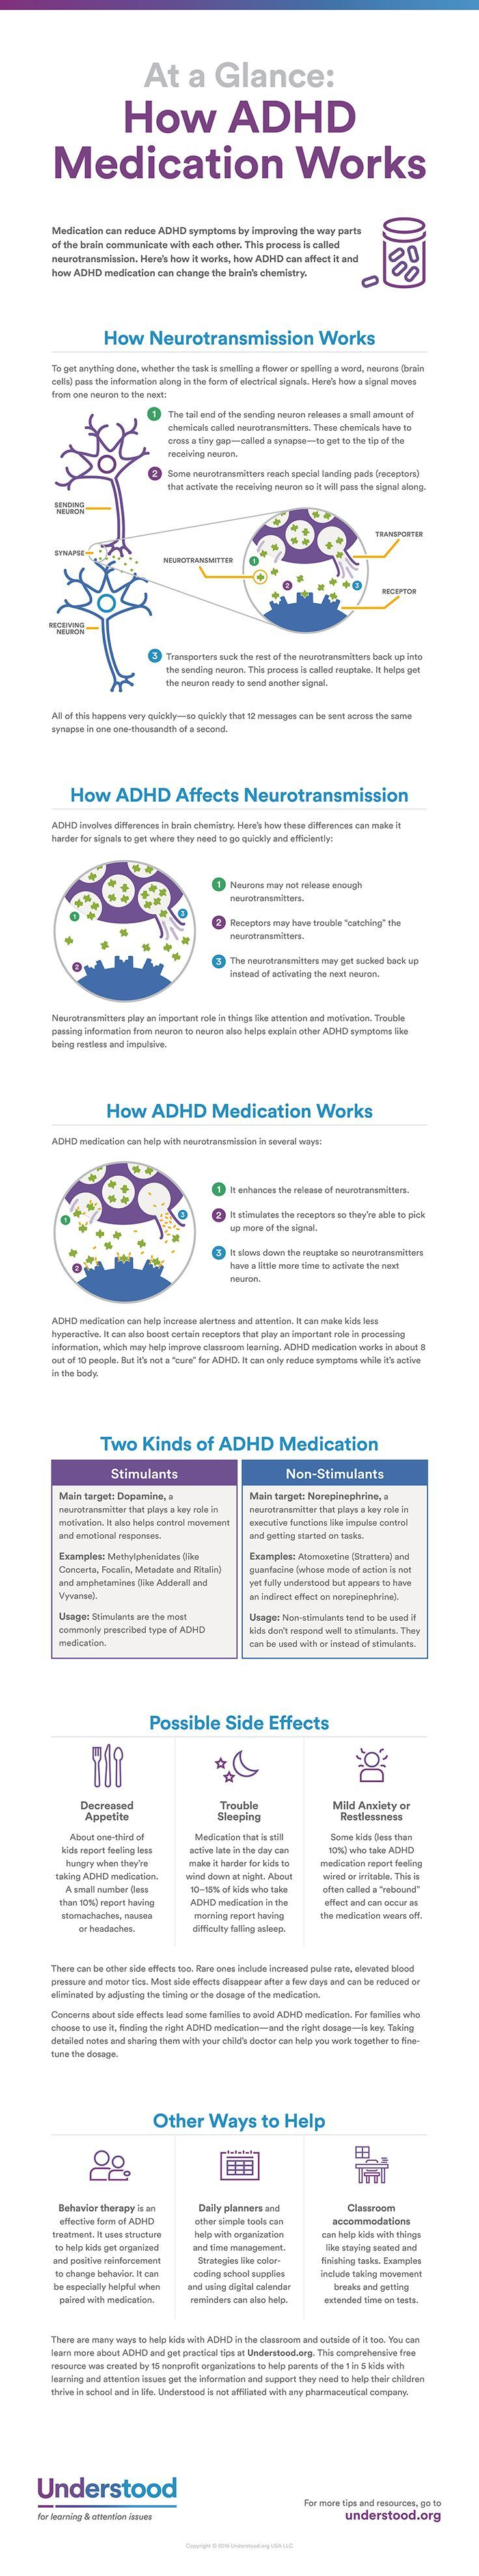 Psychology infographic & Advice What Does Research Show About the Effects of ADHD Medication? Image Description How does ADHD medication increase attention